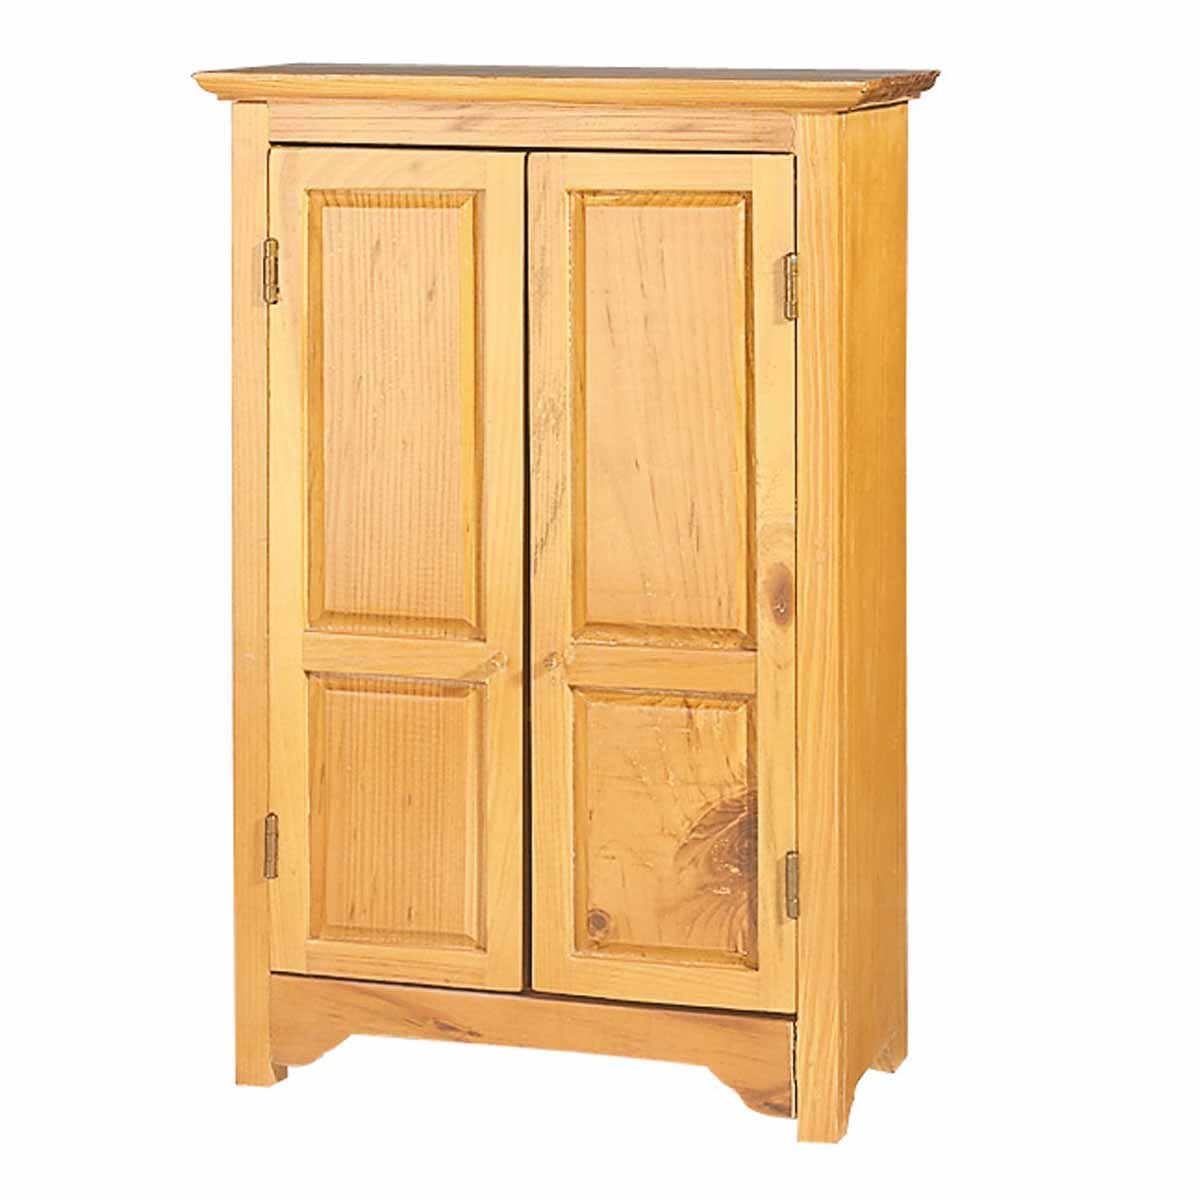 armoire armoires. under $150 CUUDDWF